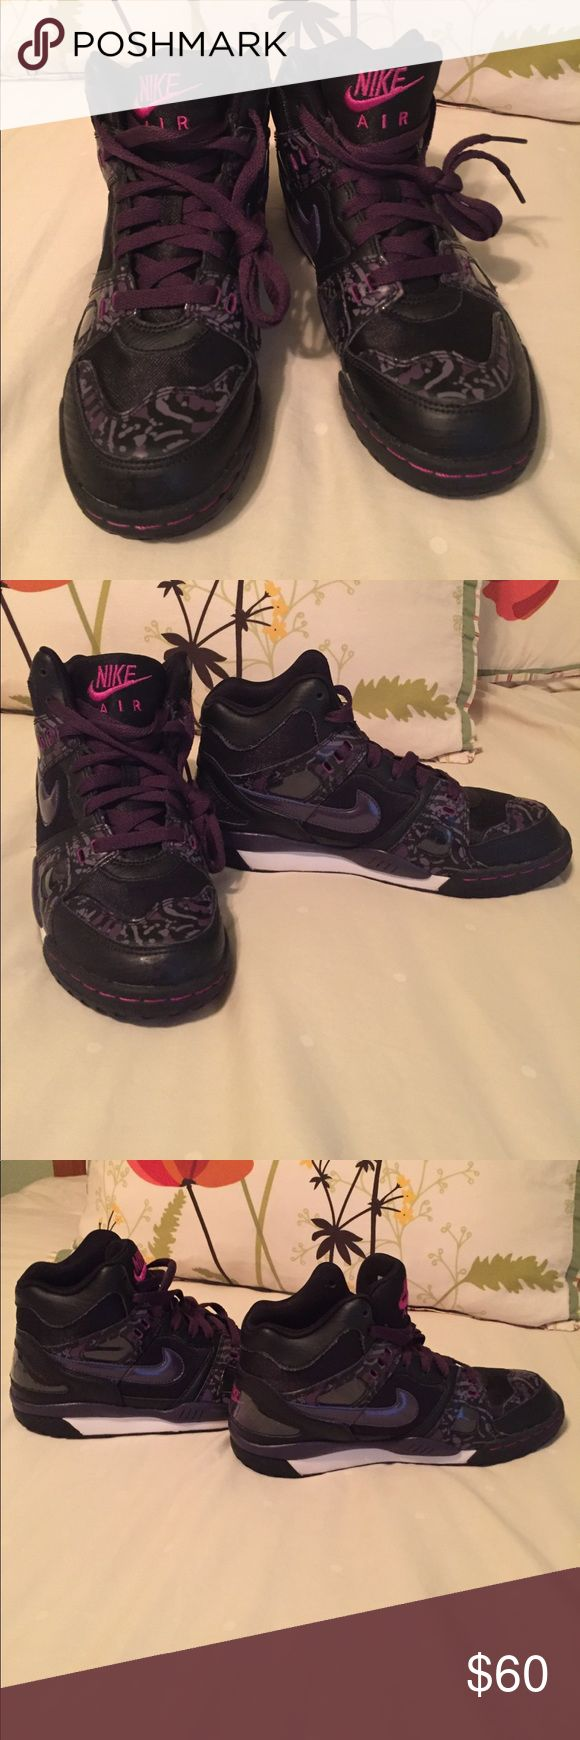 Nike Air Like New hightops black and purple Black with purple camo design and some pink stitching. These have only been worn ONCE, indoors for a dance competition so they are new condition! Nike Shoes Sneakers